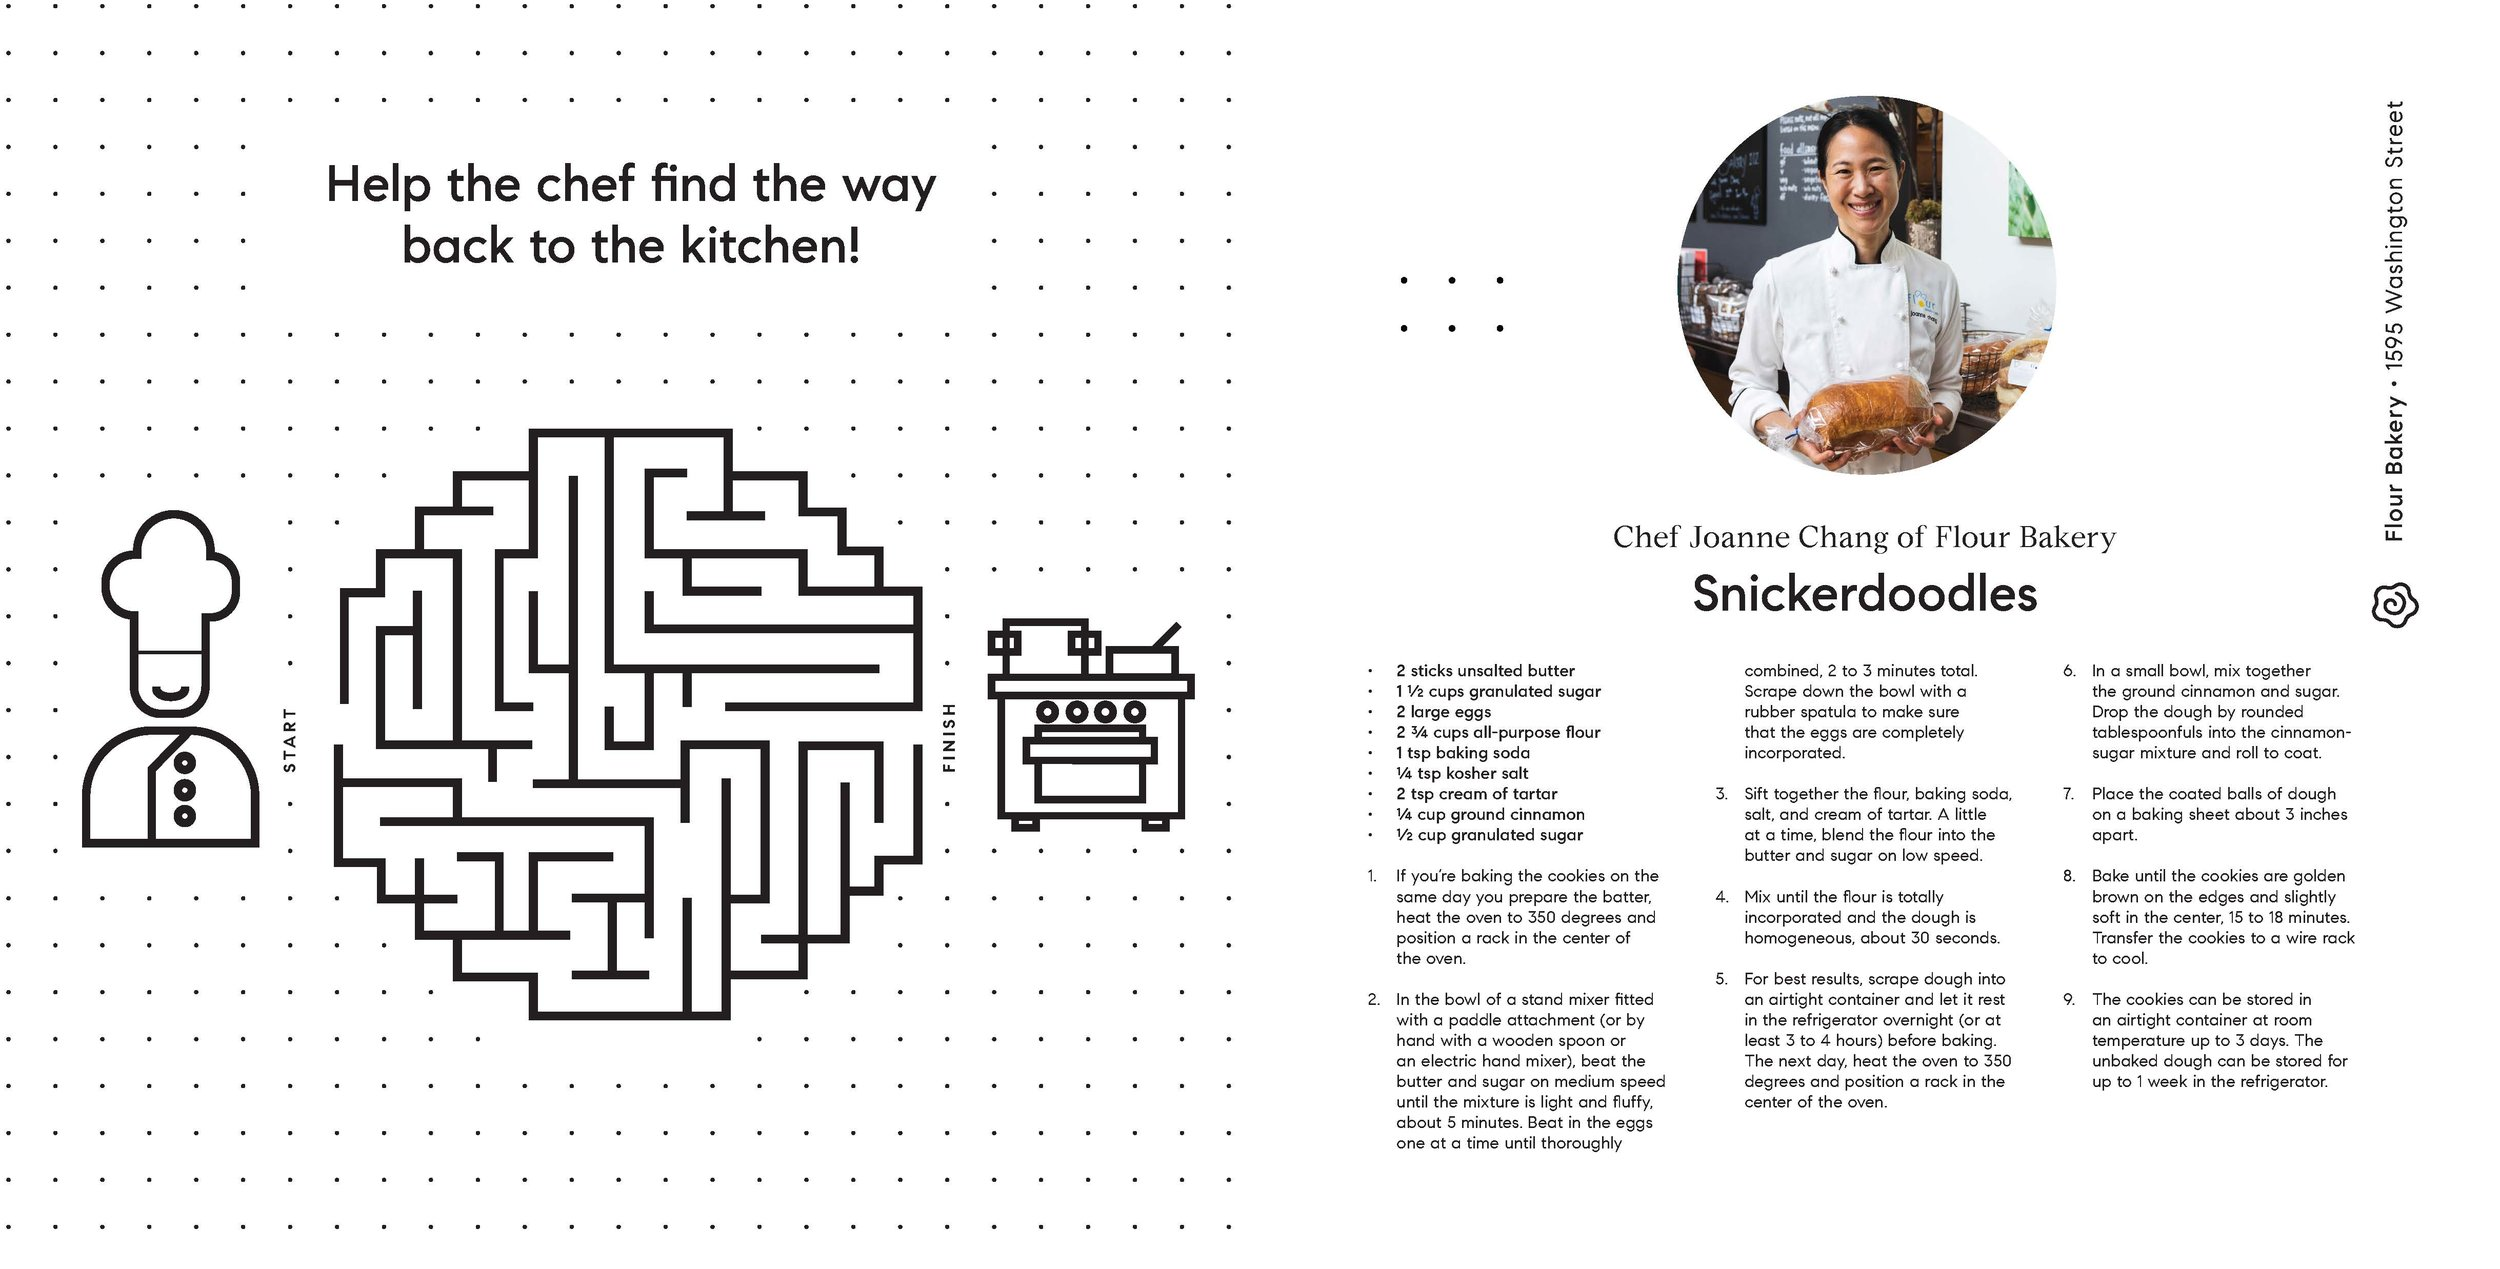 2018 0911 MO Cookbook Final_Page_03.jpg